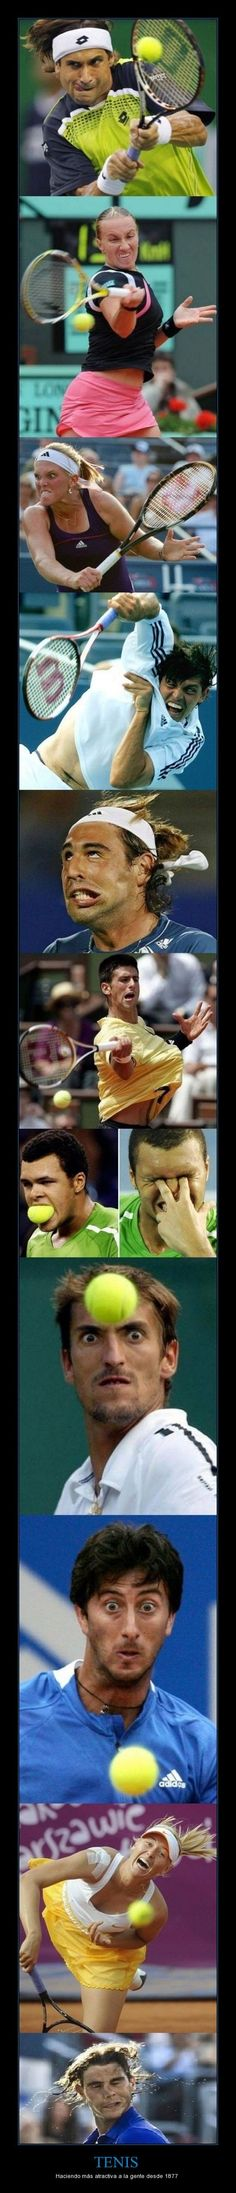 """""""Tennis, Making people more attractive since 1877""""    There's no shame in a game face! :) Keep it up Tennis players!"""